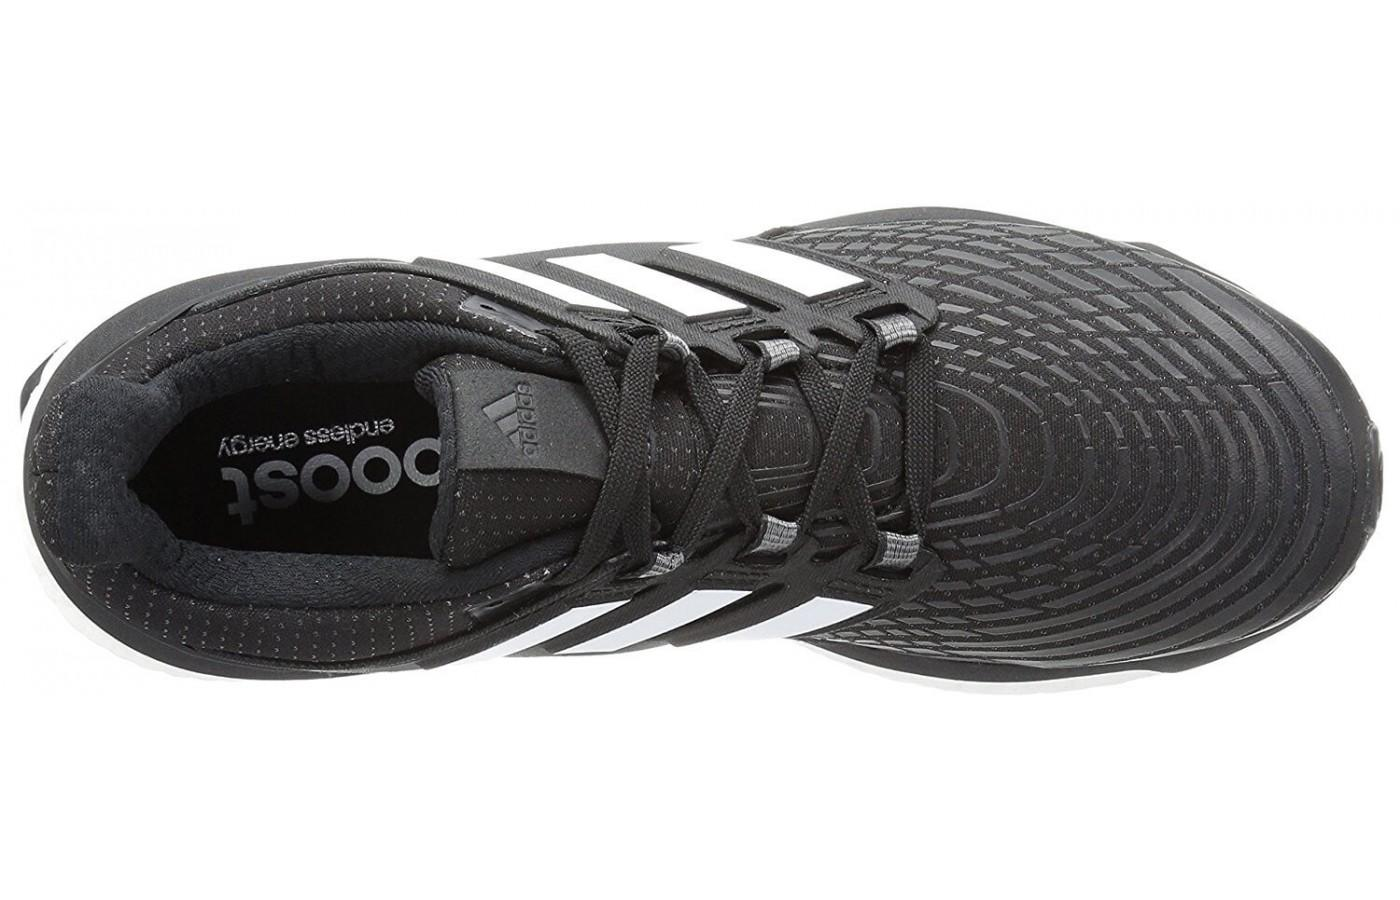 the Adidas Energy Boost has a stretchy, sock like upper